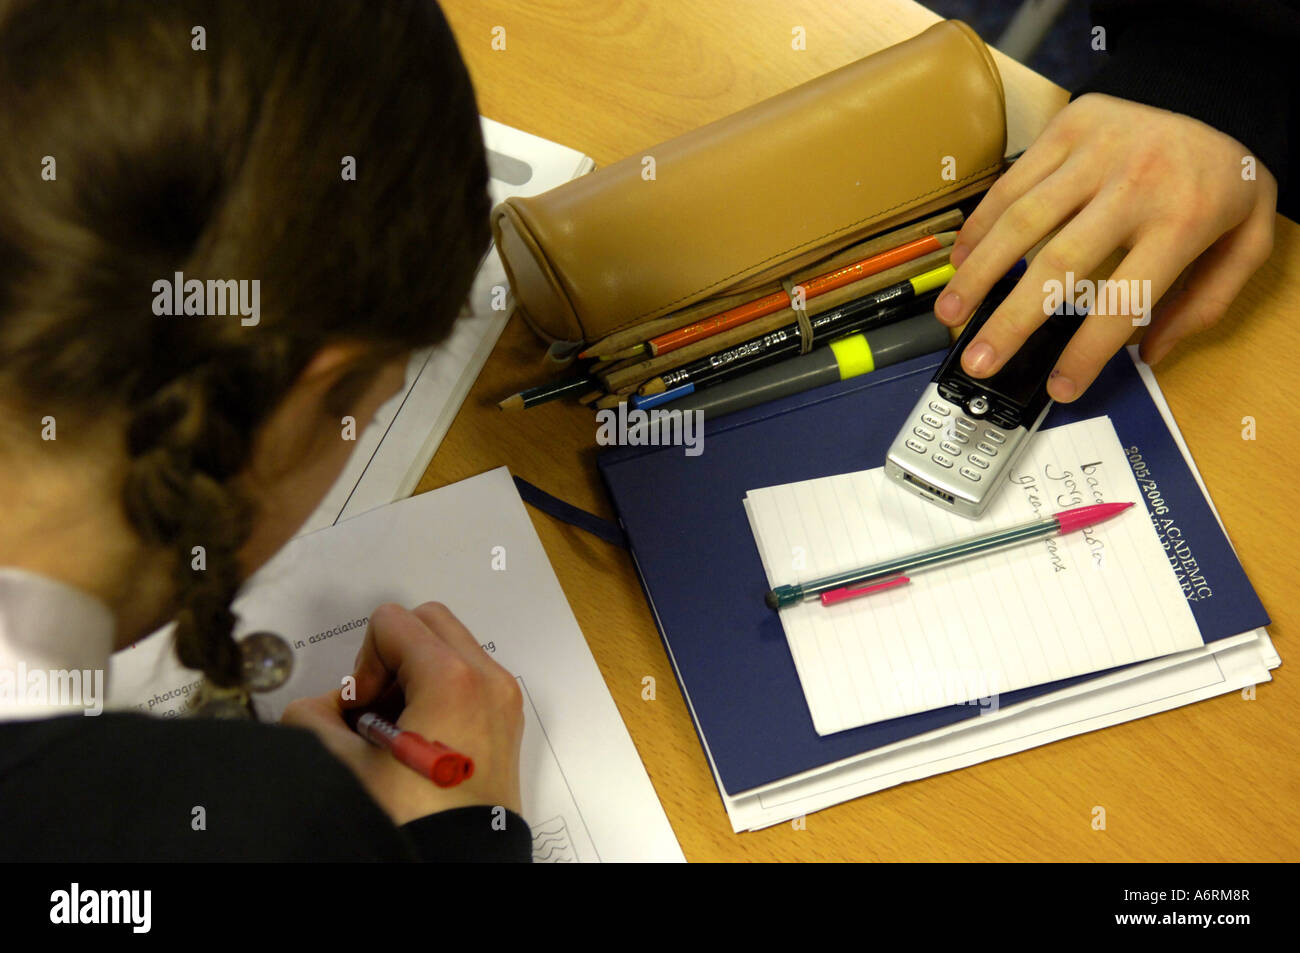 desk work study kid theft child school student youth young youngster technology mobile phones cameraphones video Stock Photo